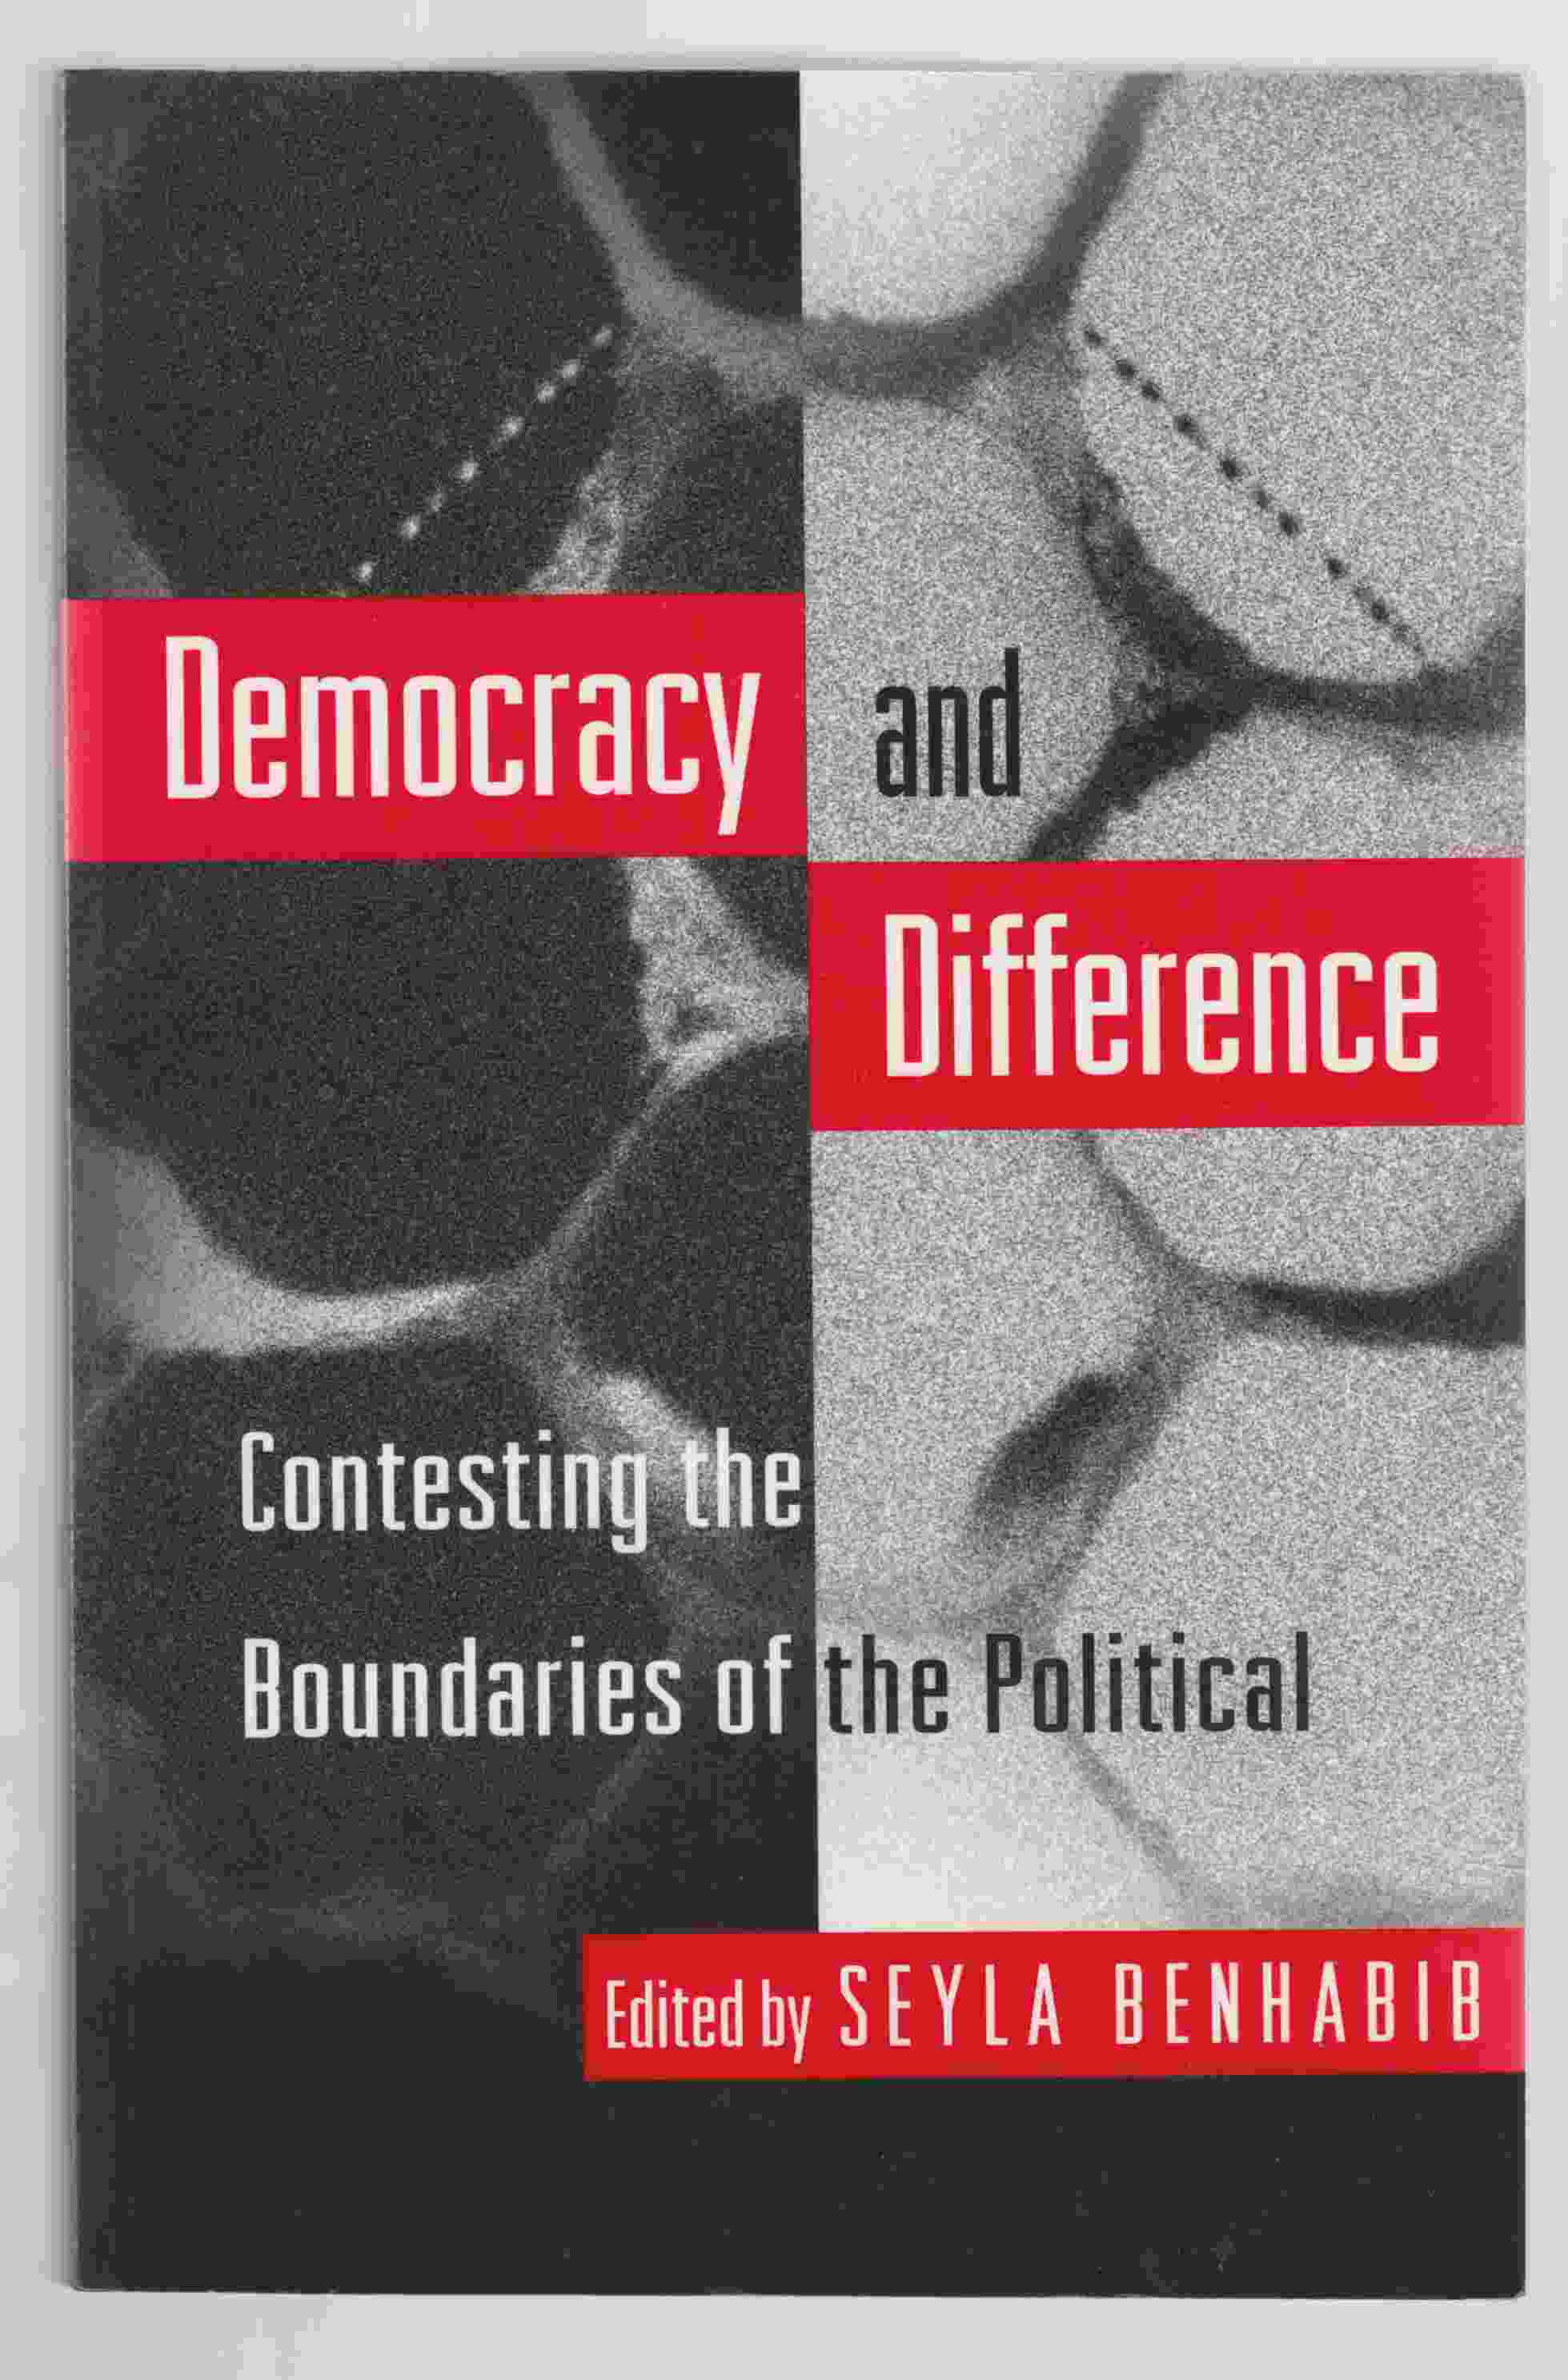 Image for Democacy and Difference Contesting the Boundaries of the Political